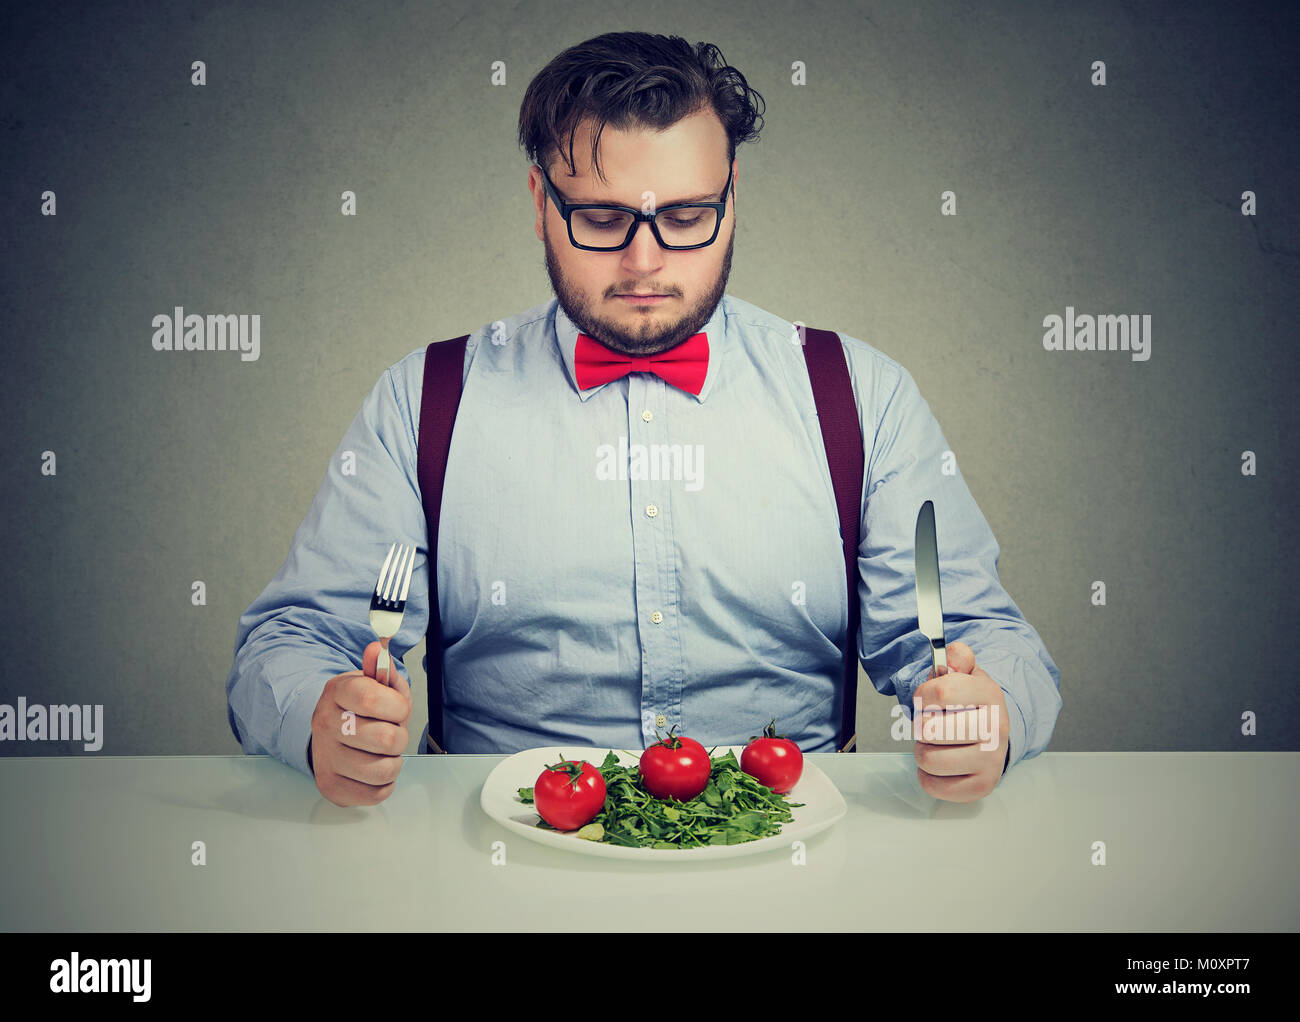 Young overweight man concentrated on healthy salad trying to lose weight. - Stock Image